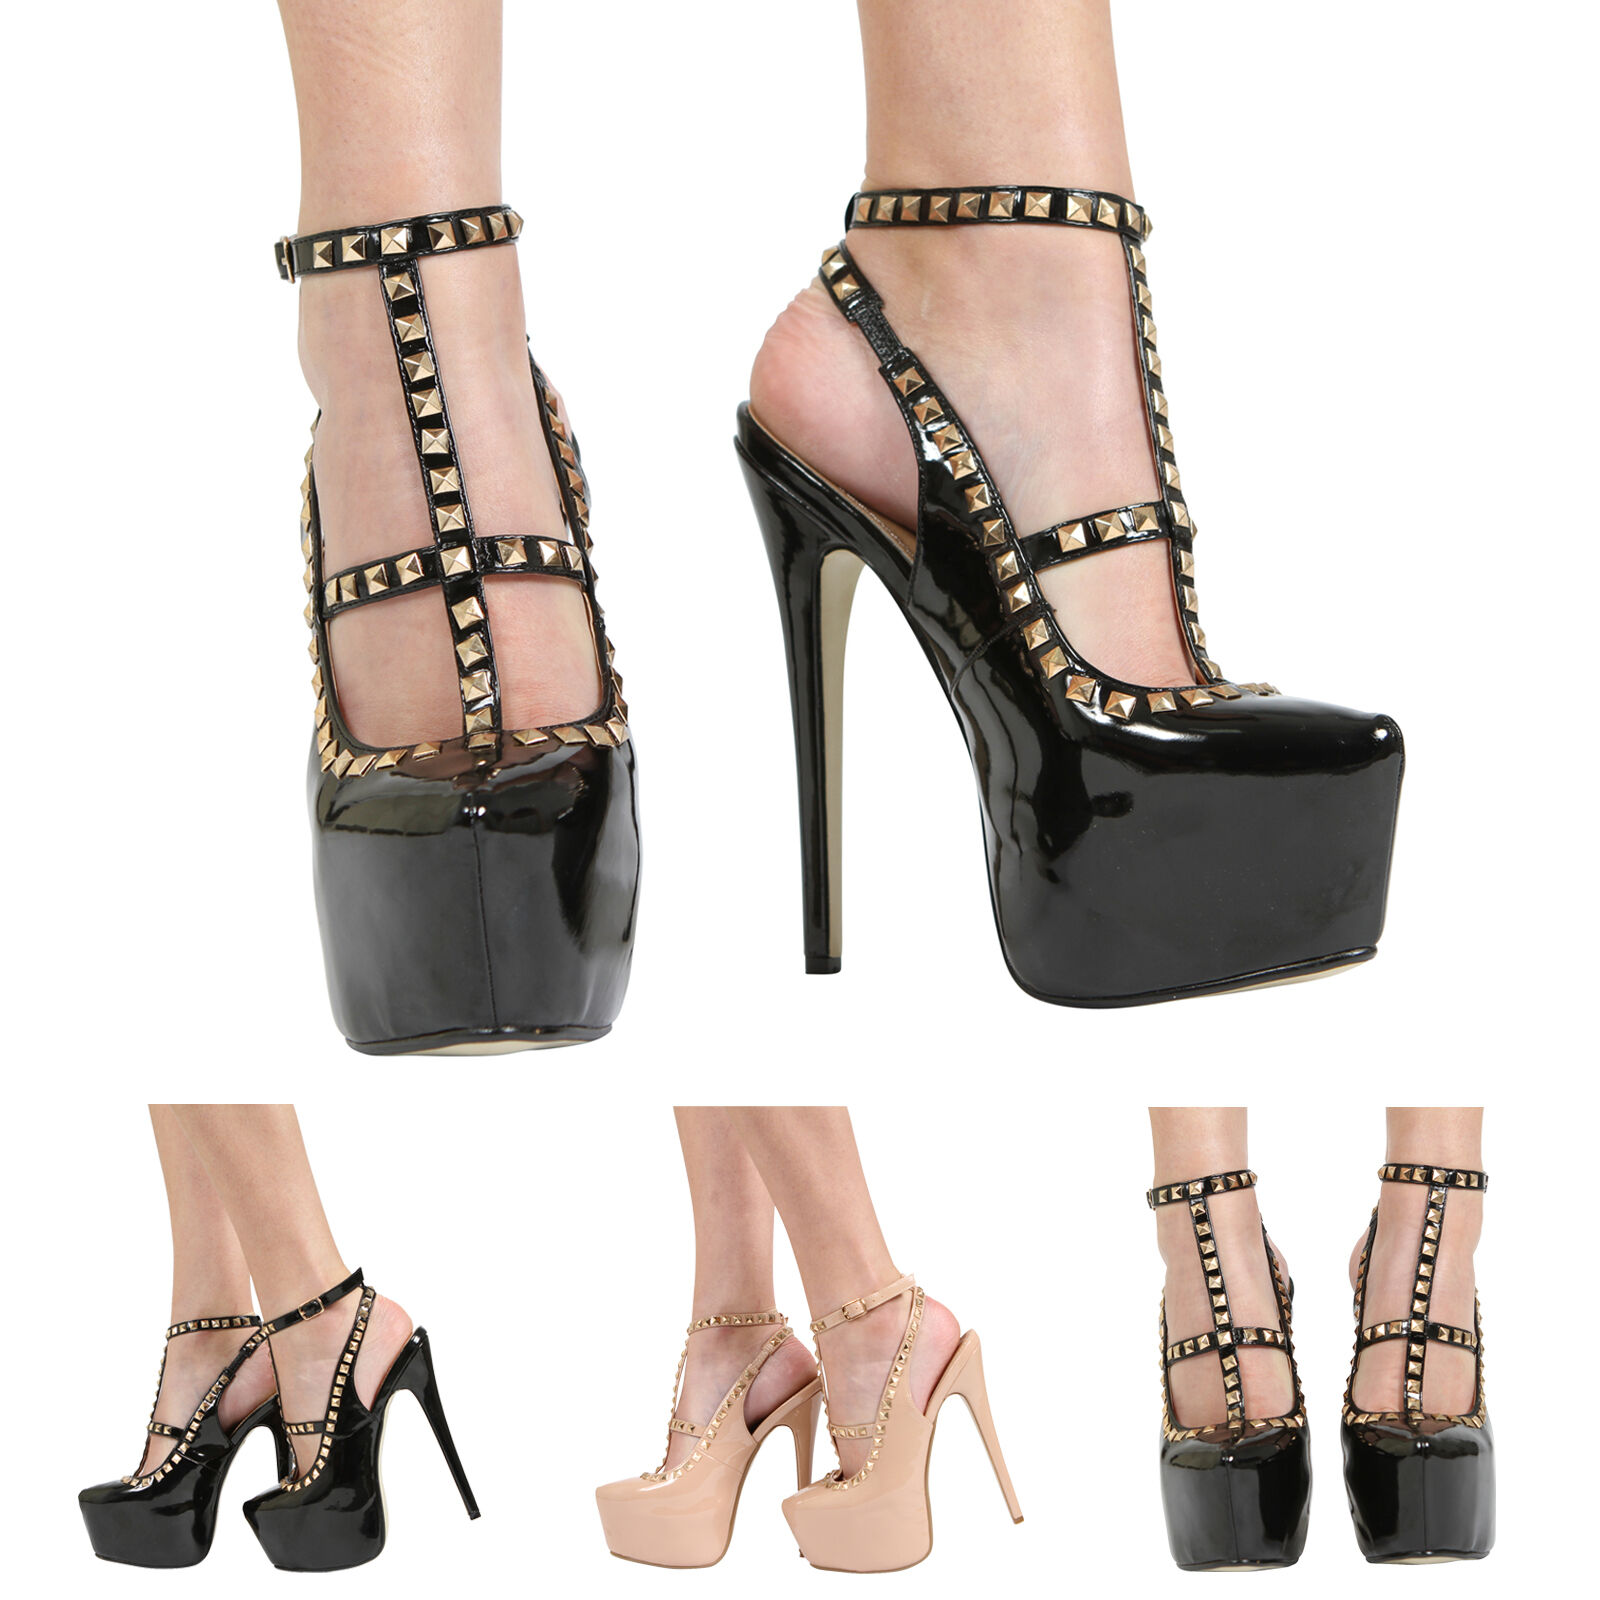 WOMENS LADIES CONCEALED PLATFORM HIGH PARTY HEEL ANKLE STRAP STUDDED PARTY HIGH SHOES SIZE d776af